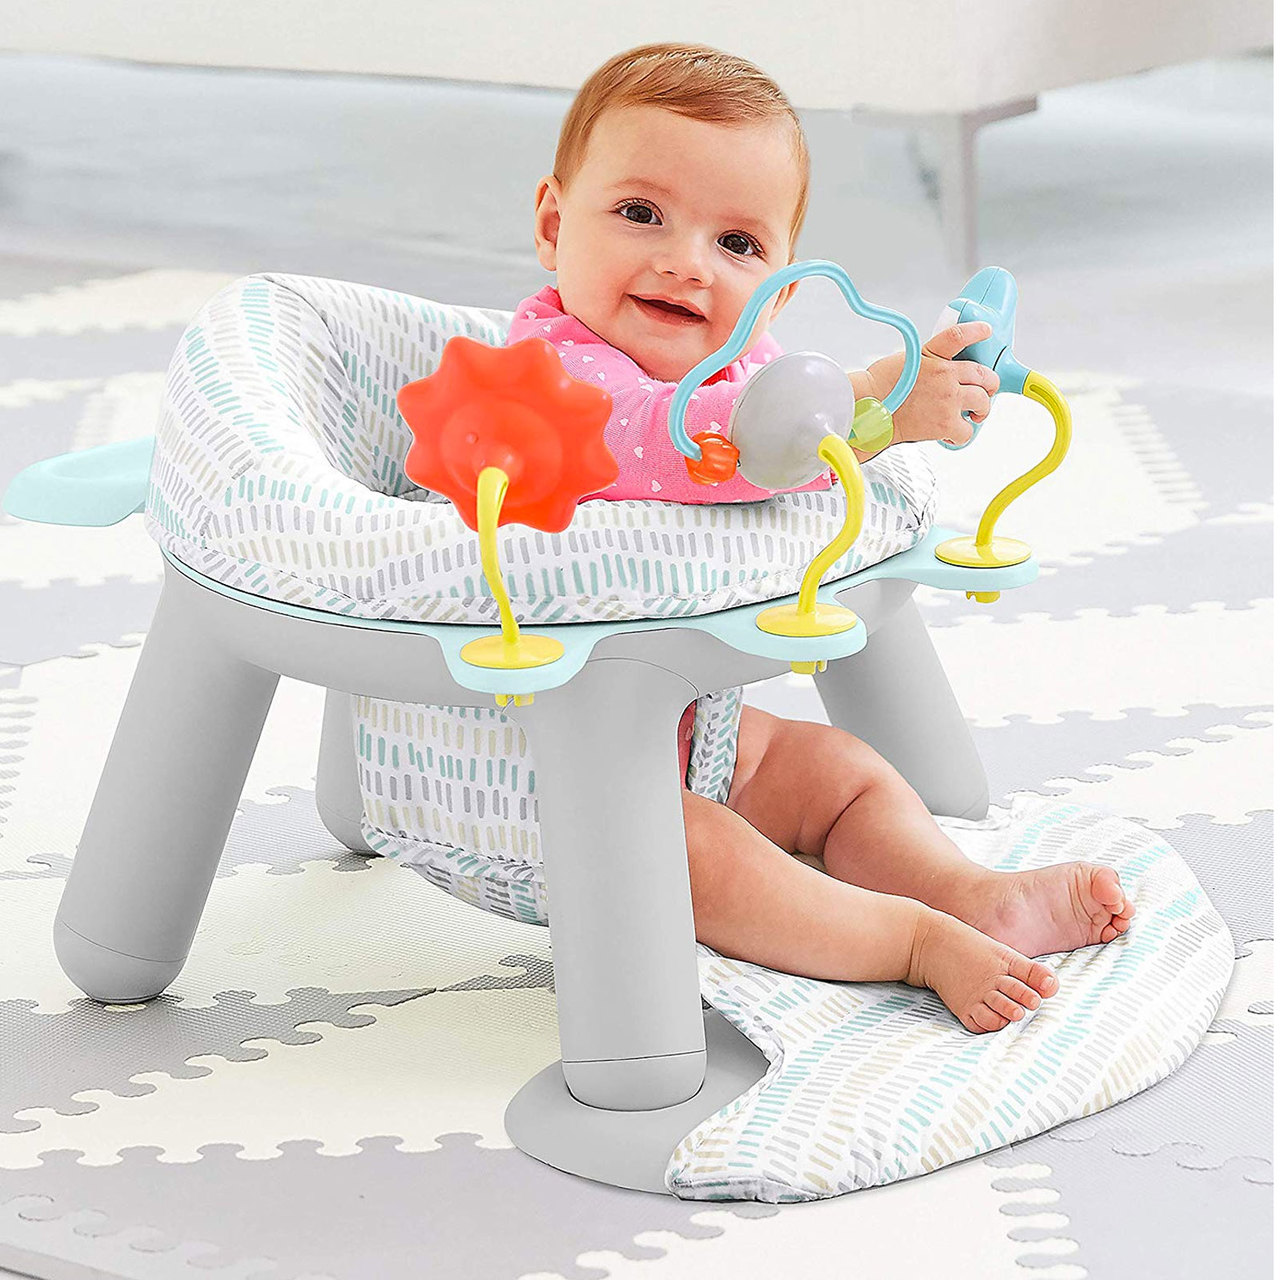 Skip_Hop_Baby_Seat_Silver_Lining_Cloud_Sit-up_Chair_Activity_Seat__52203.1562243342